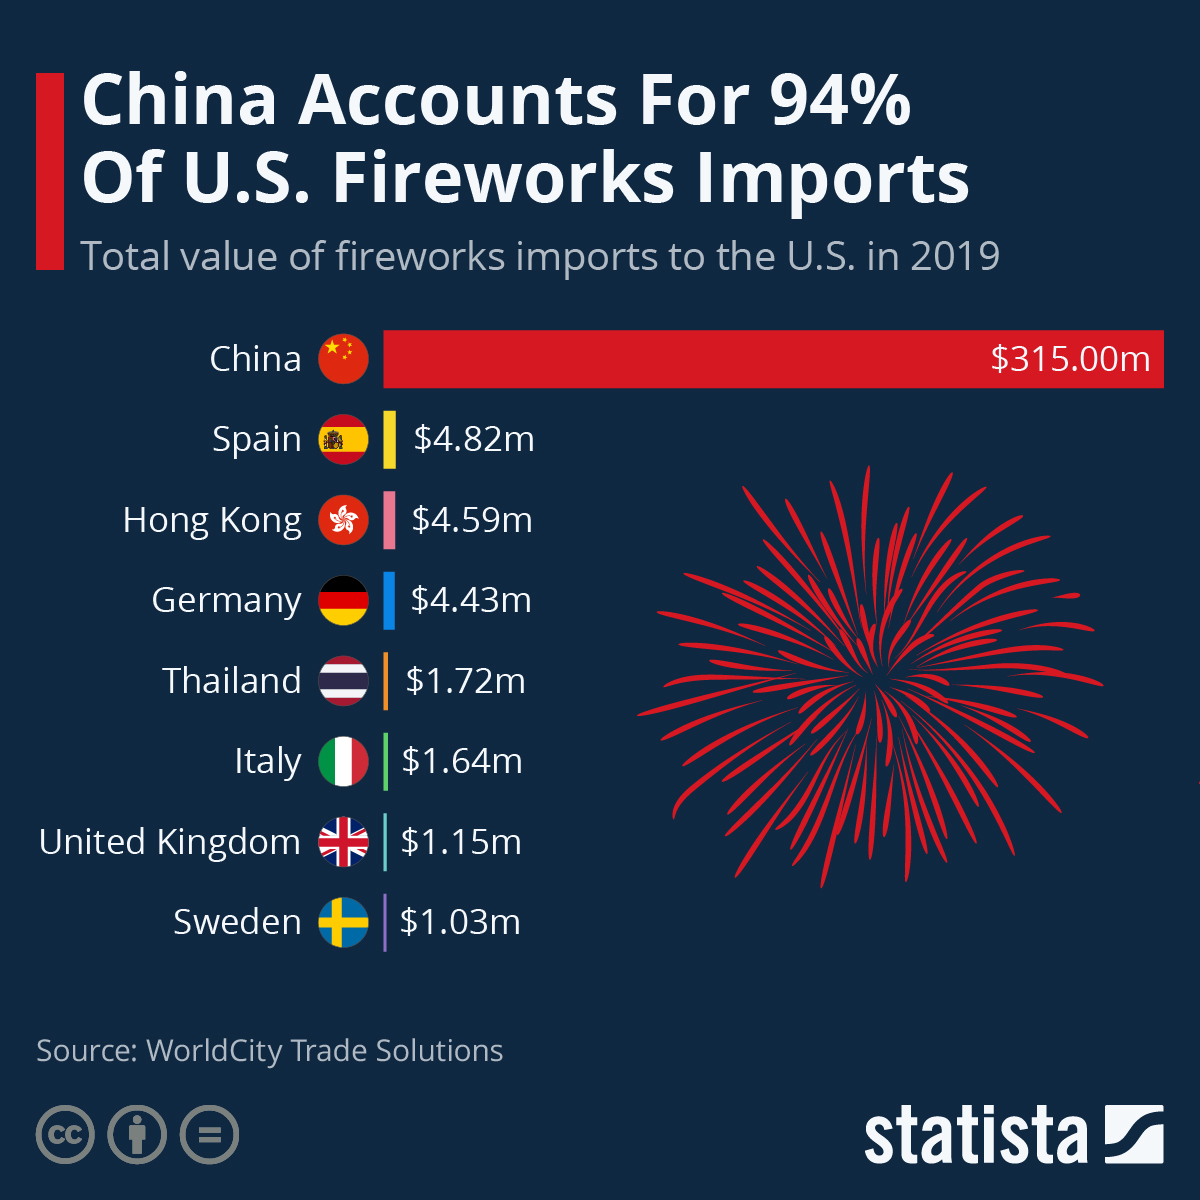 China Accounts For 94% Of U.S. Fireworks Imports #infographic